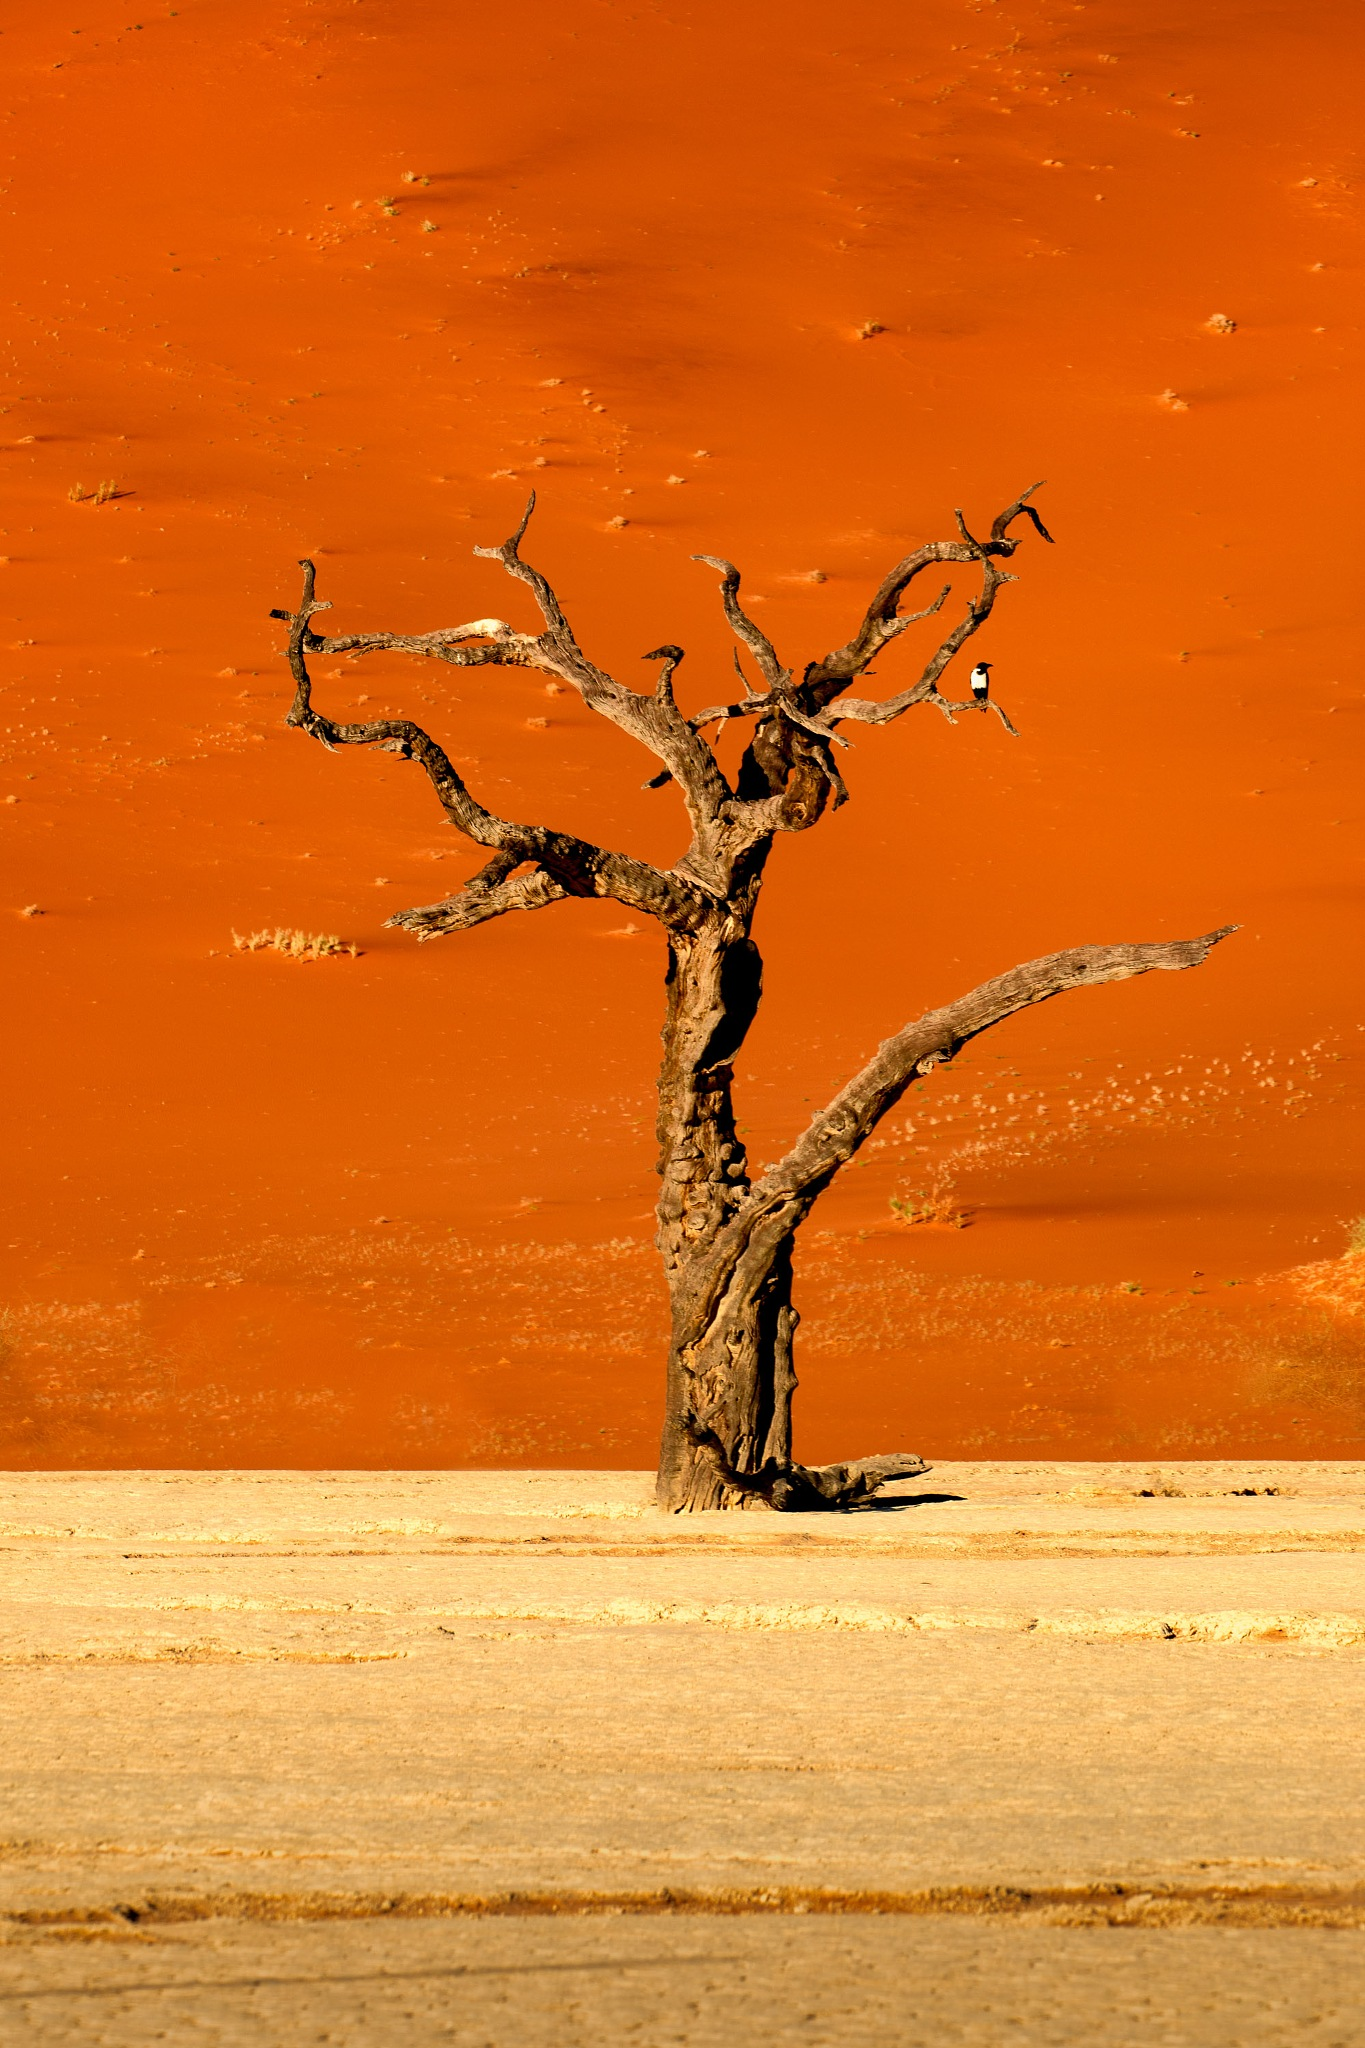 The Deadvlei Tree and the Magpie by Iain McLean